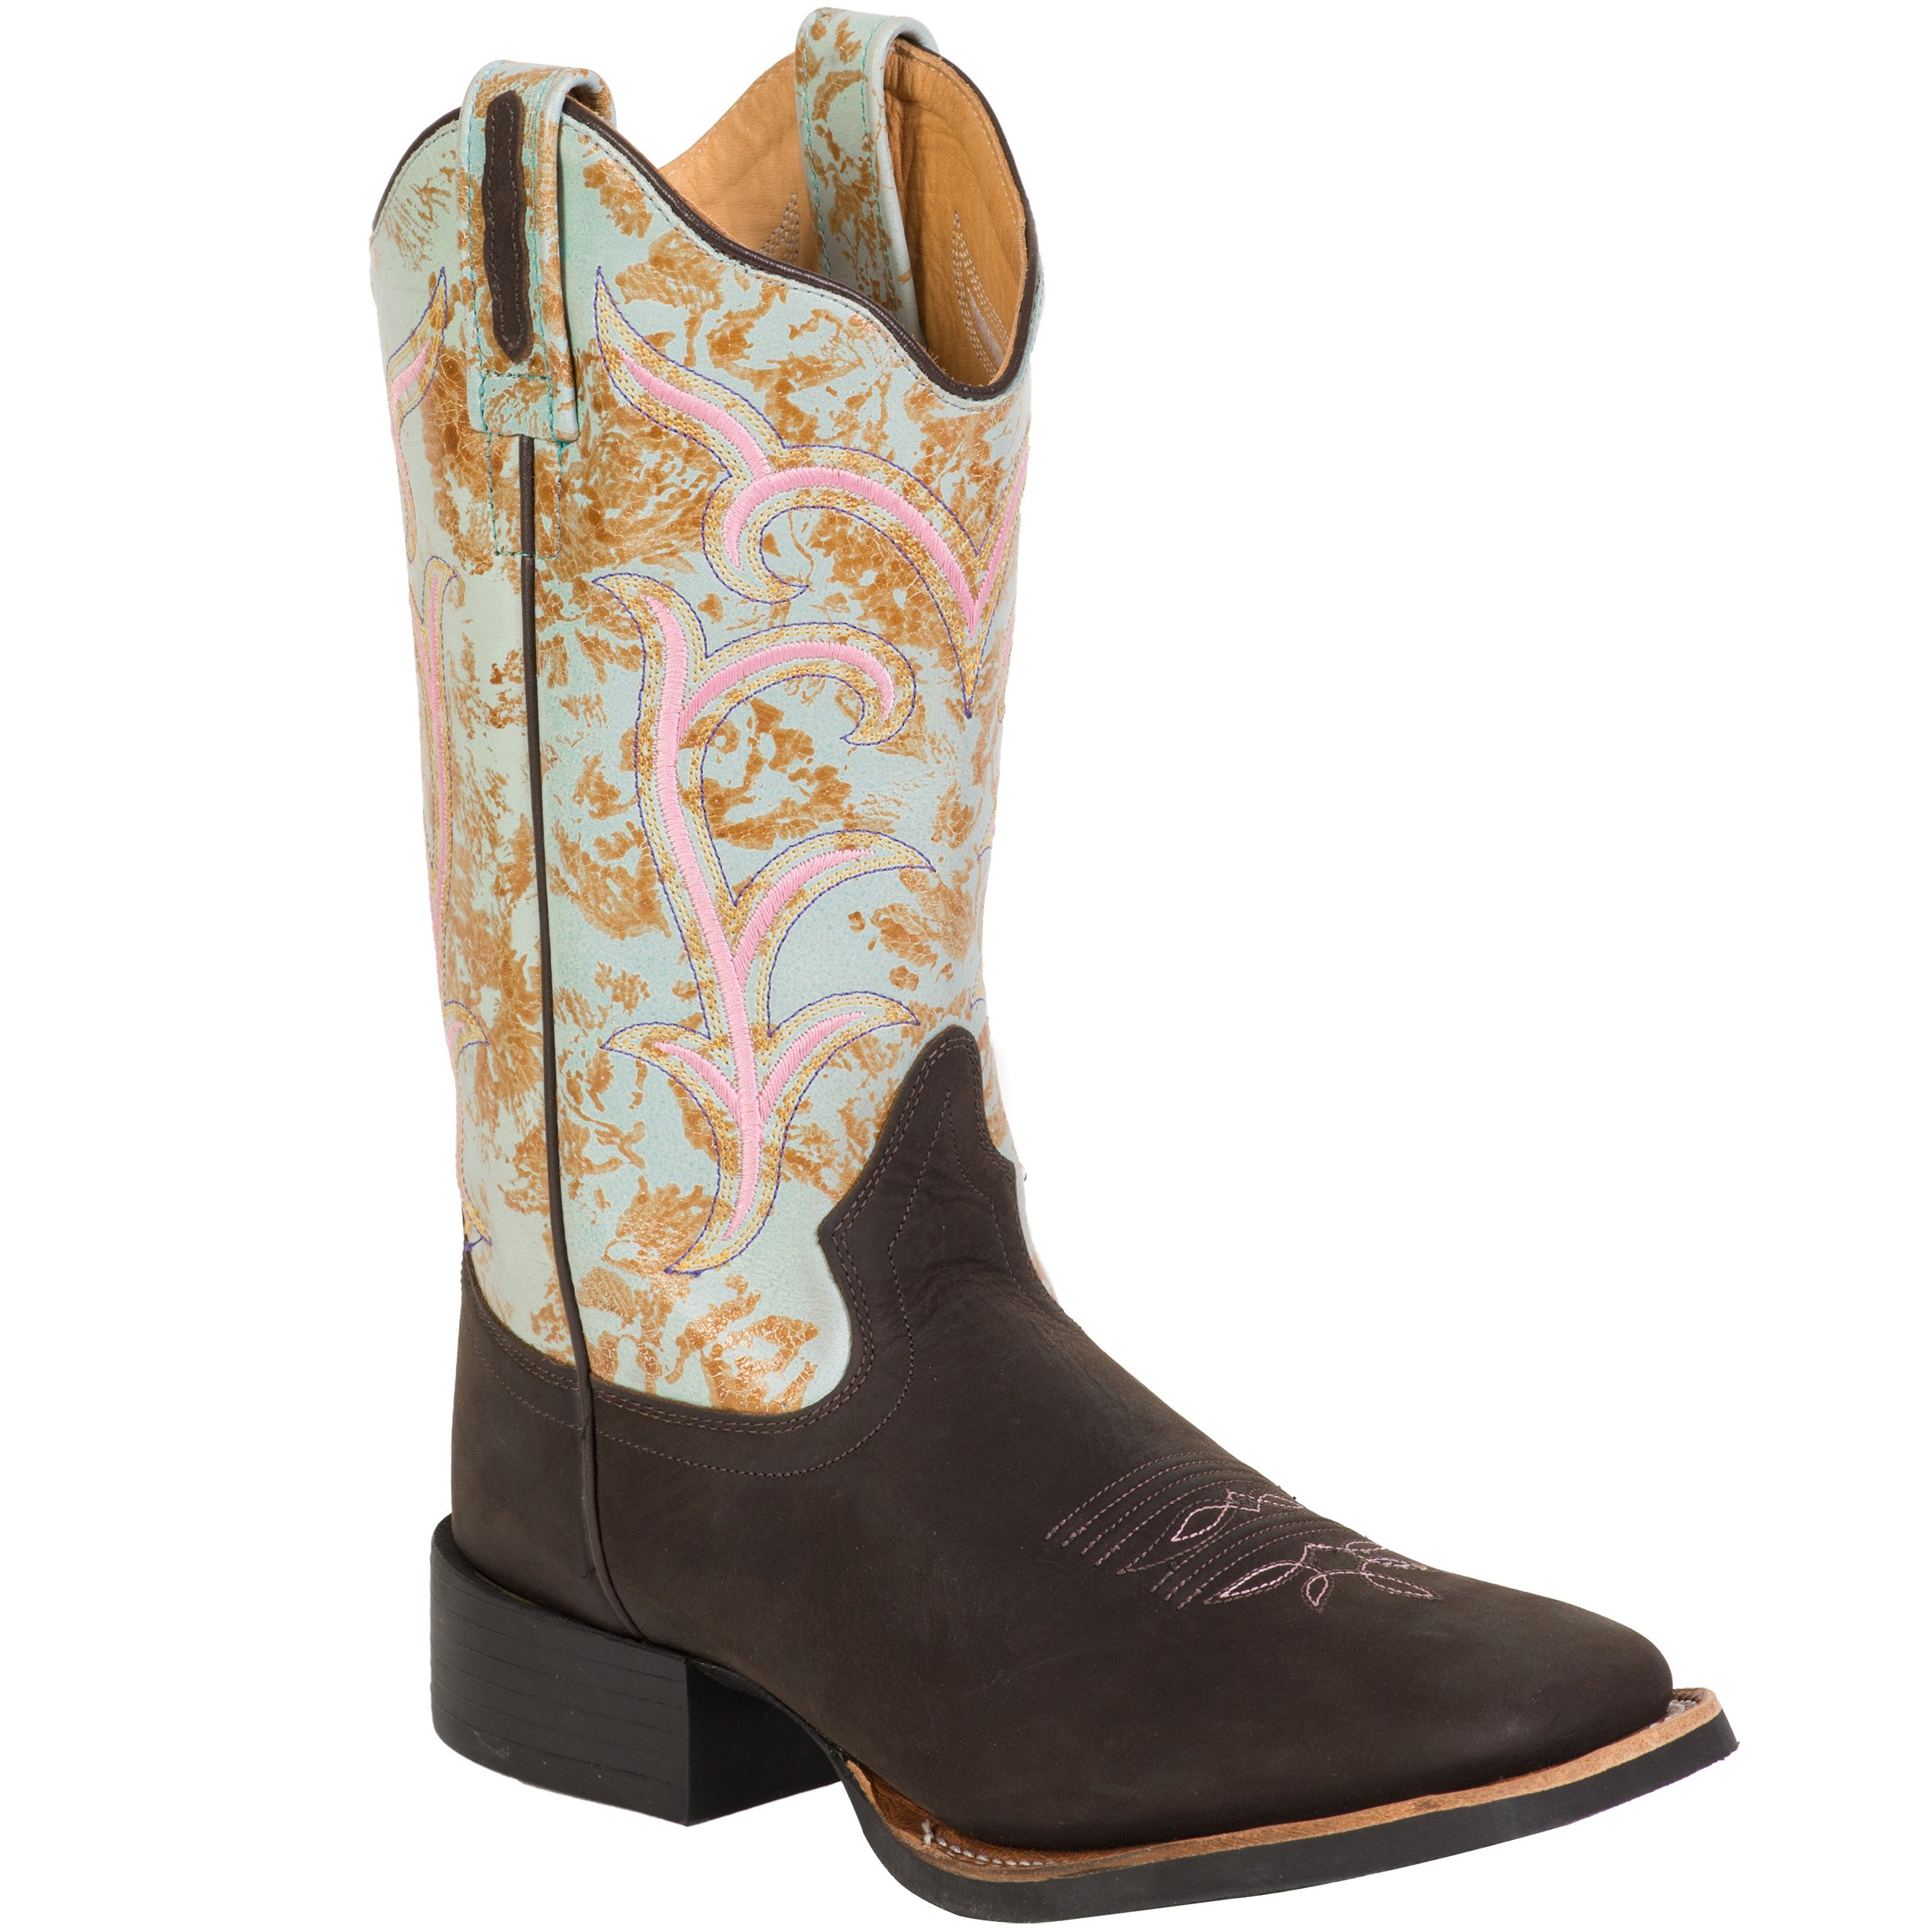 2500x2500 Women's Cowboy Boots The Western Company